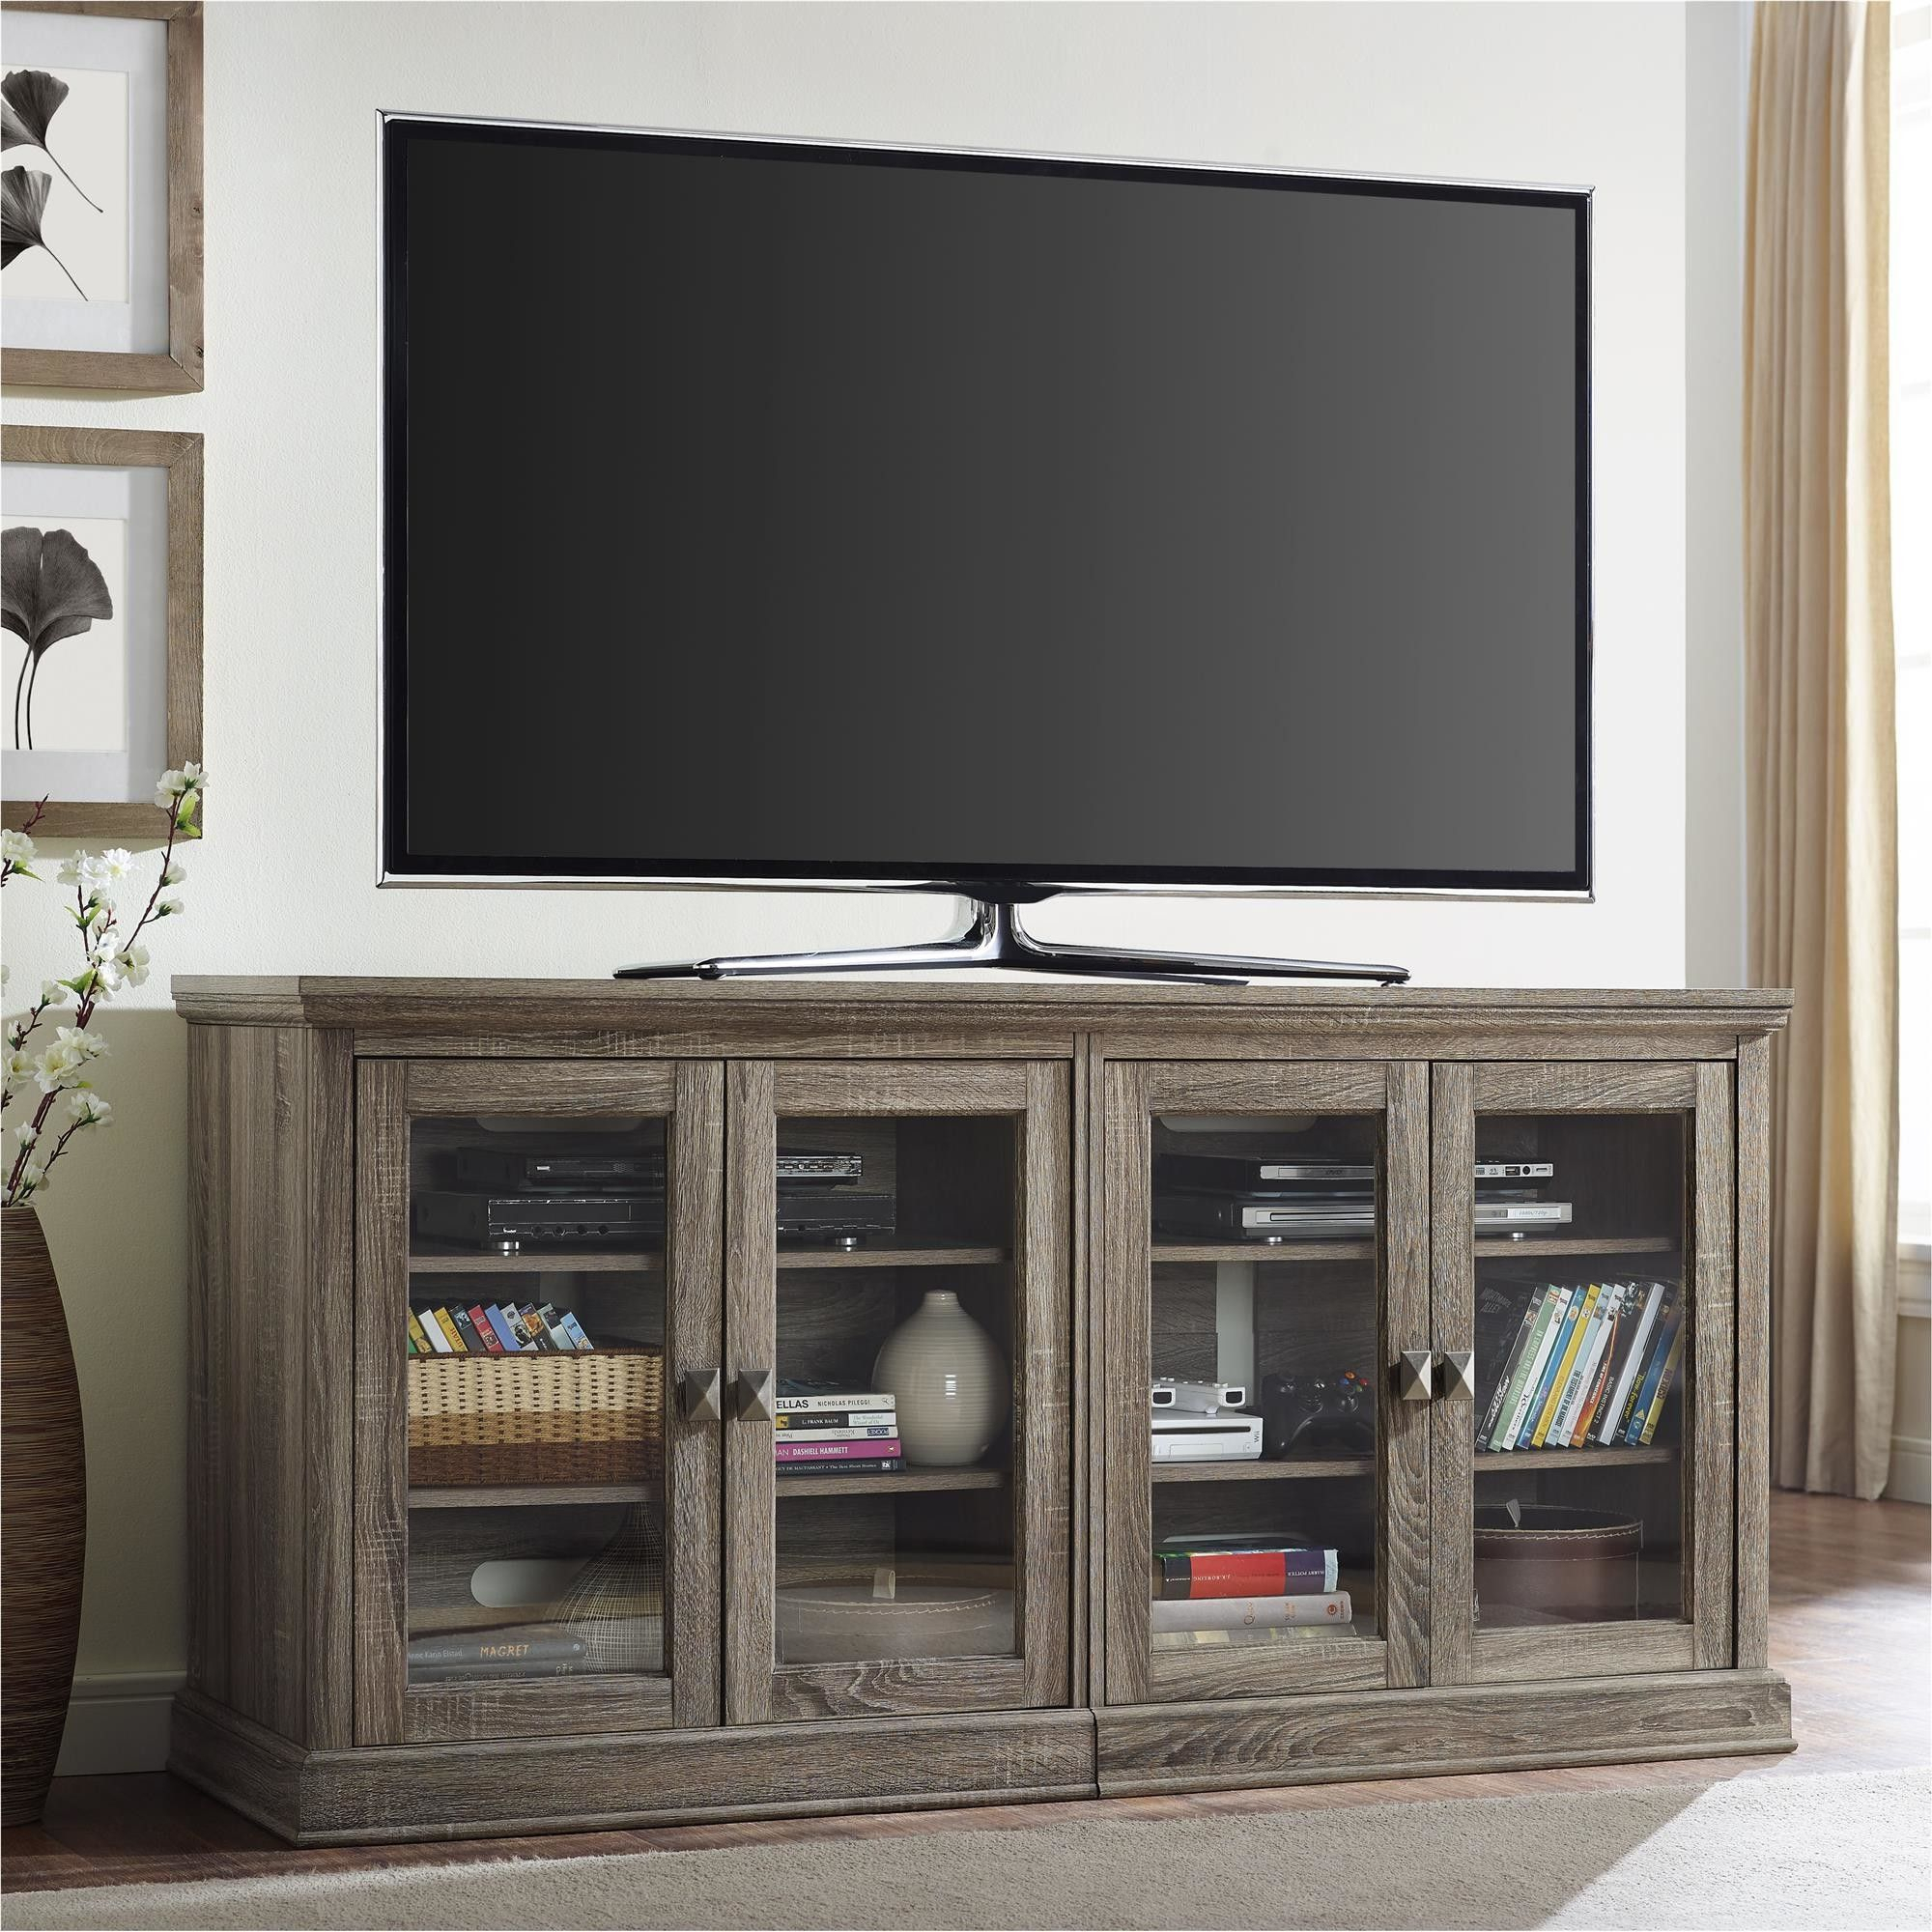 Shila Media Console & Reviews   Joss & Main   Tv Stand With Regard To Joss And Main Tv Stands (View 15 of 15)